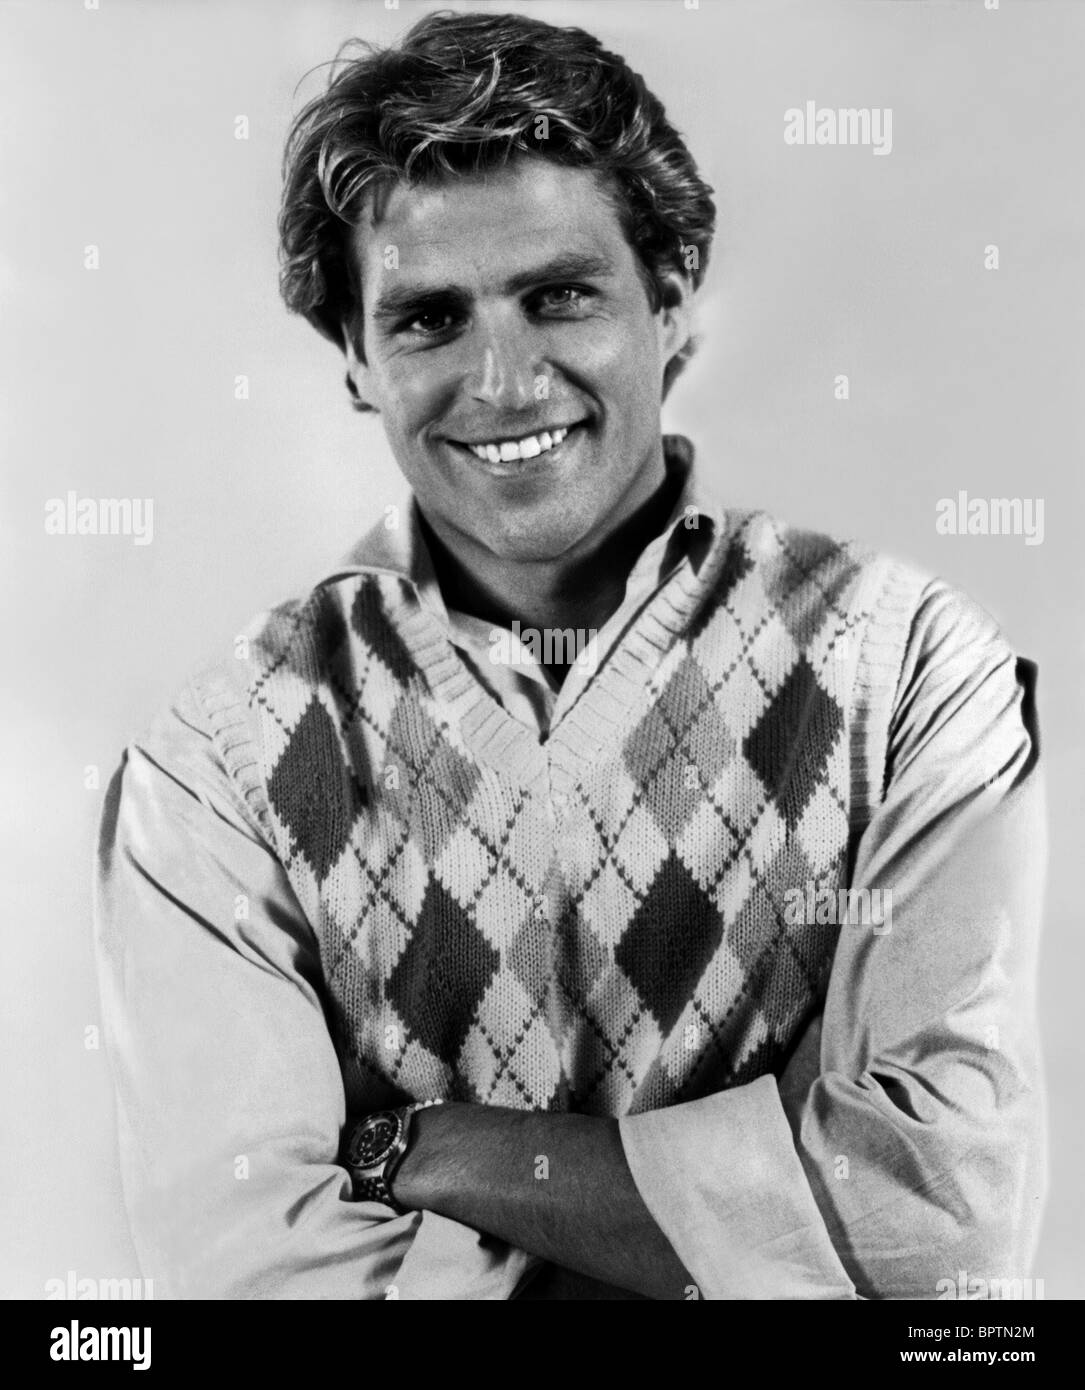 TED MCGINLEY ACTOR (1984) - Stock Image